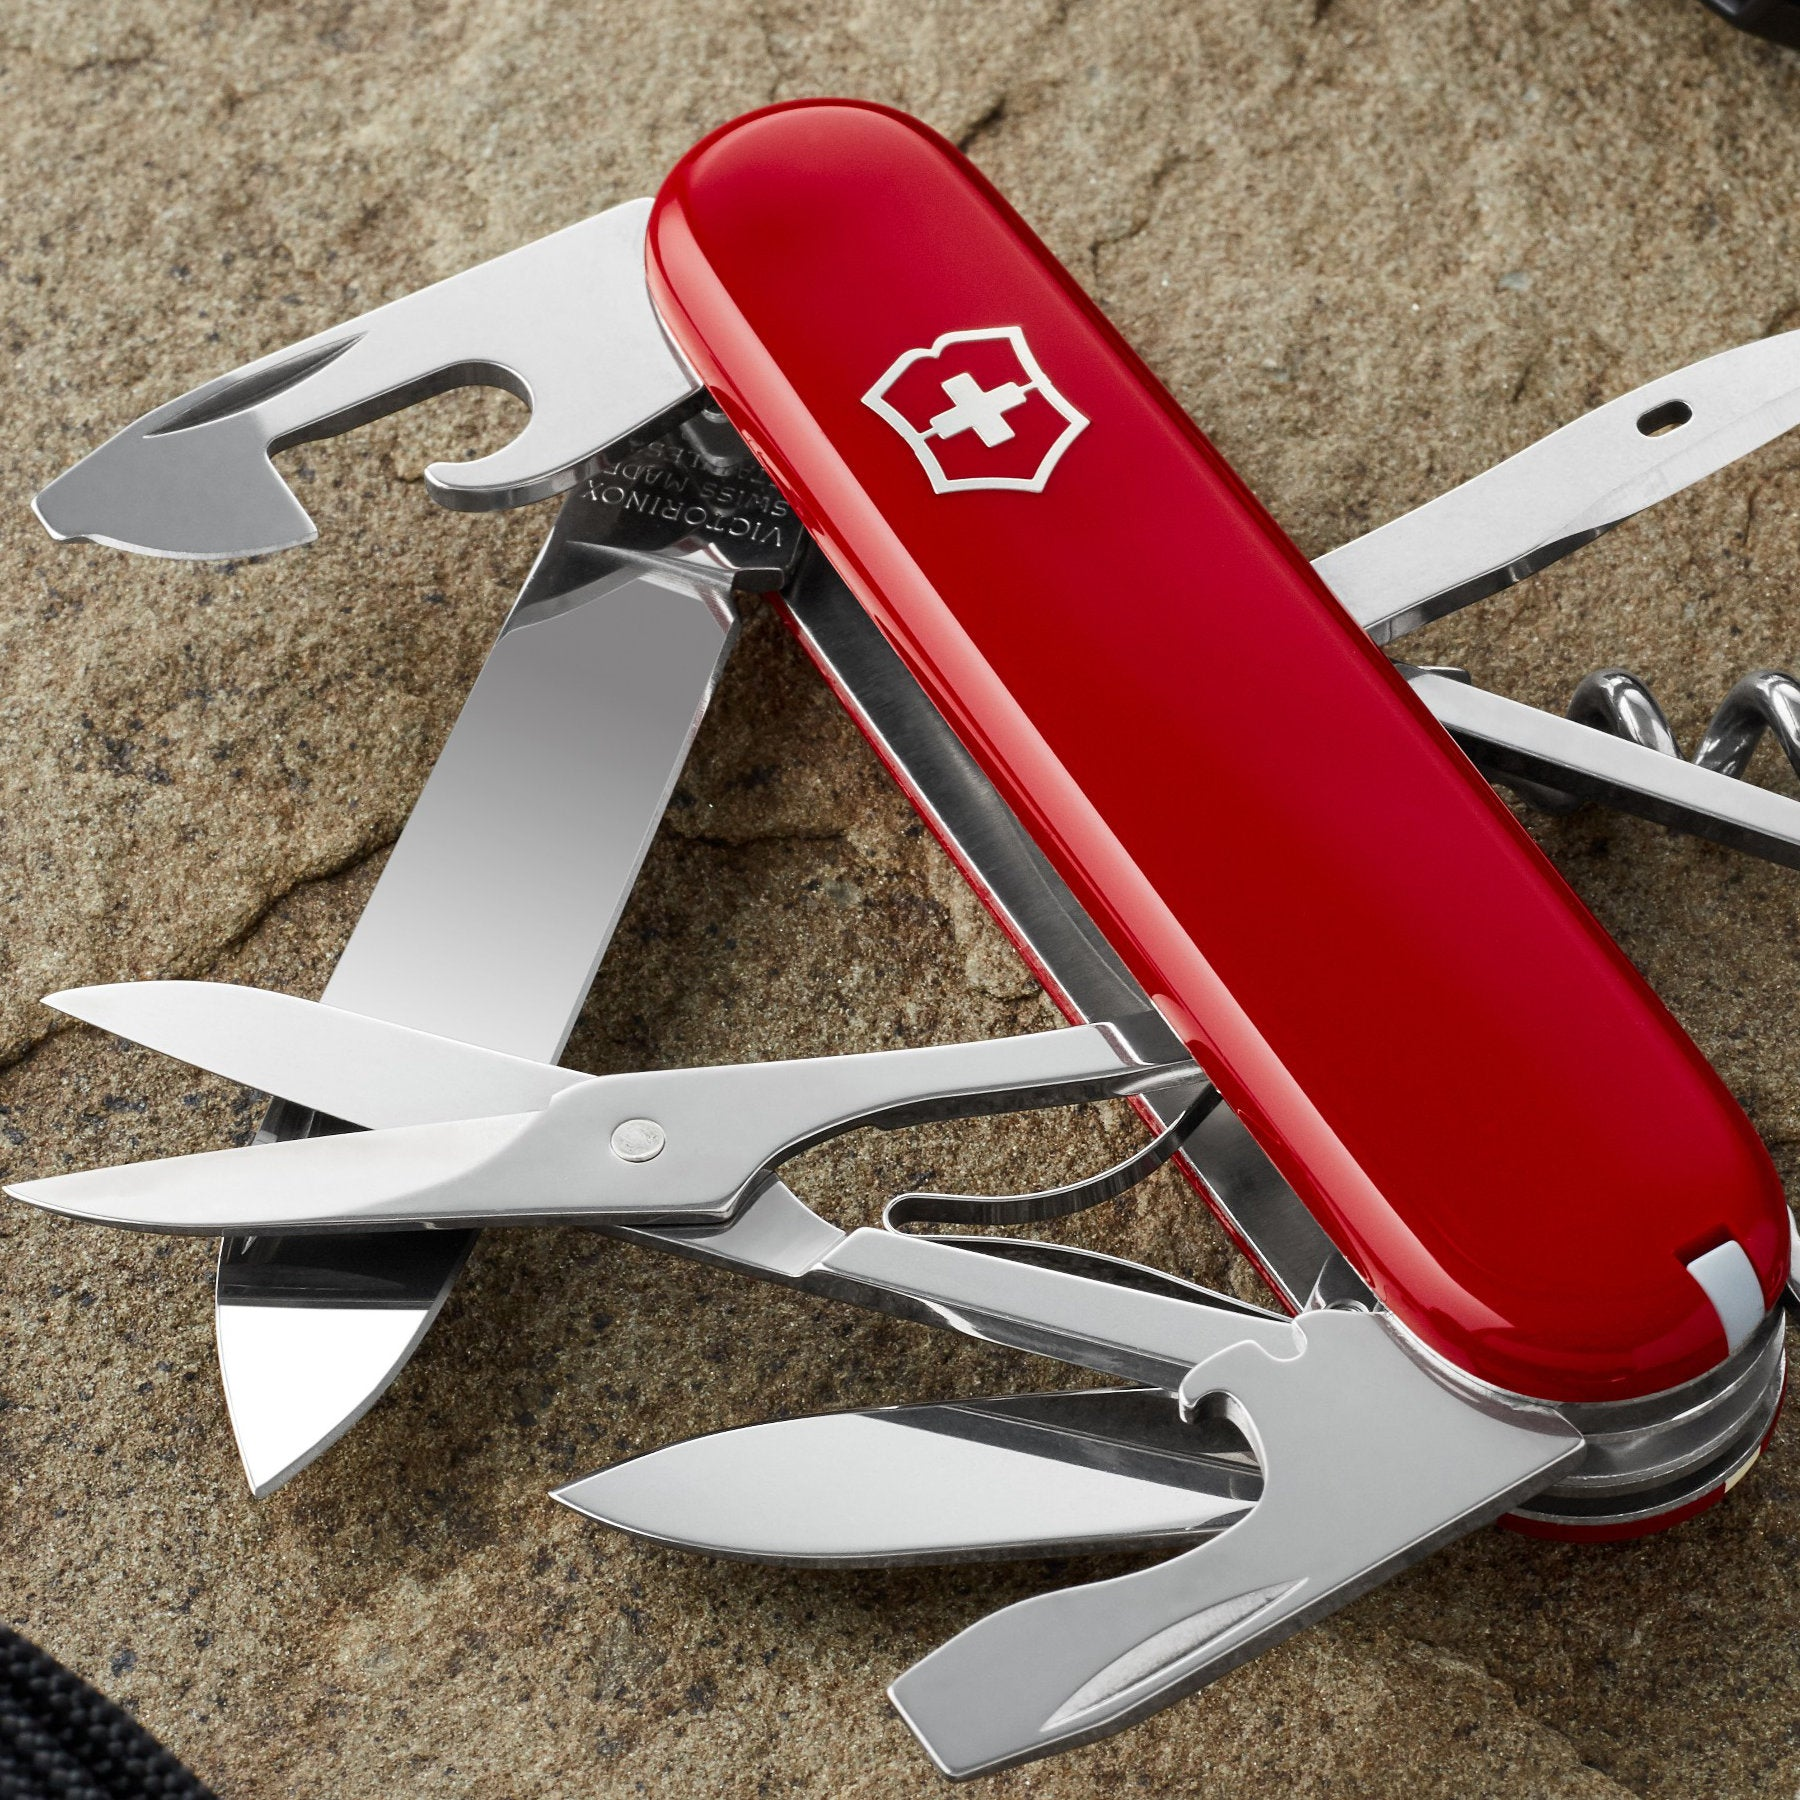 Bestselling Swiss Army Knives by Victorinox